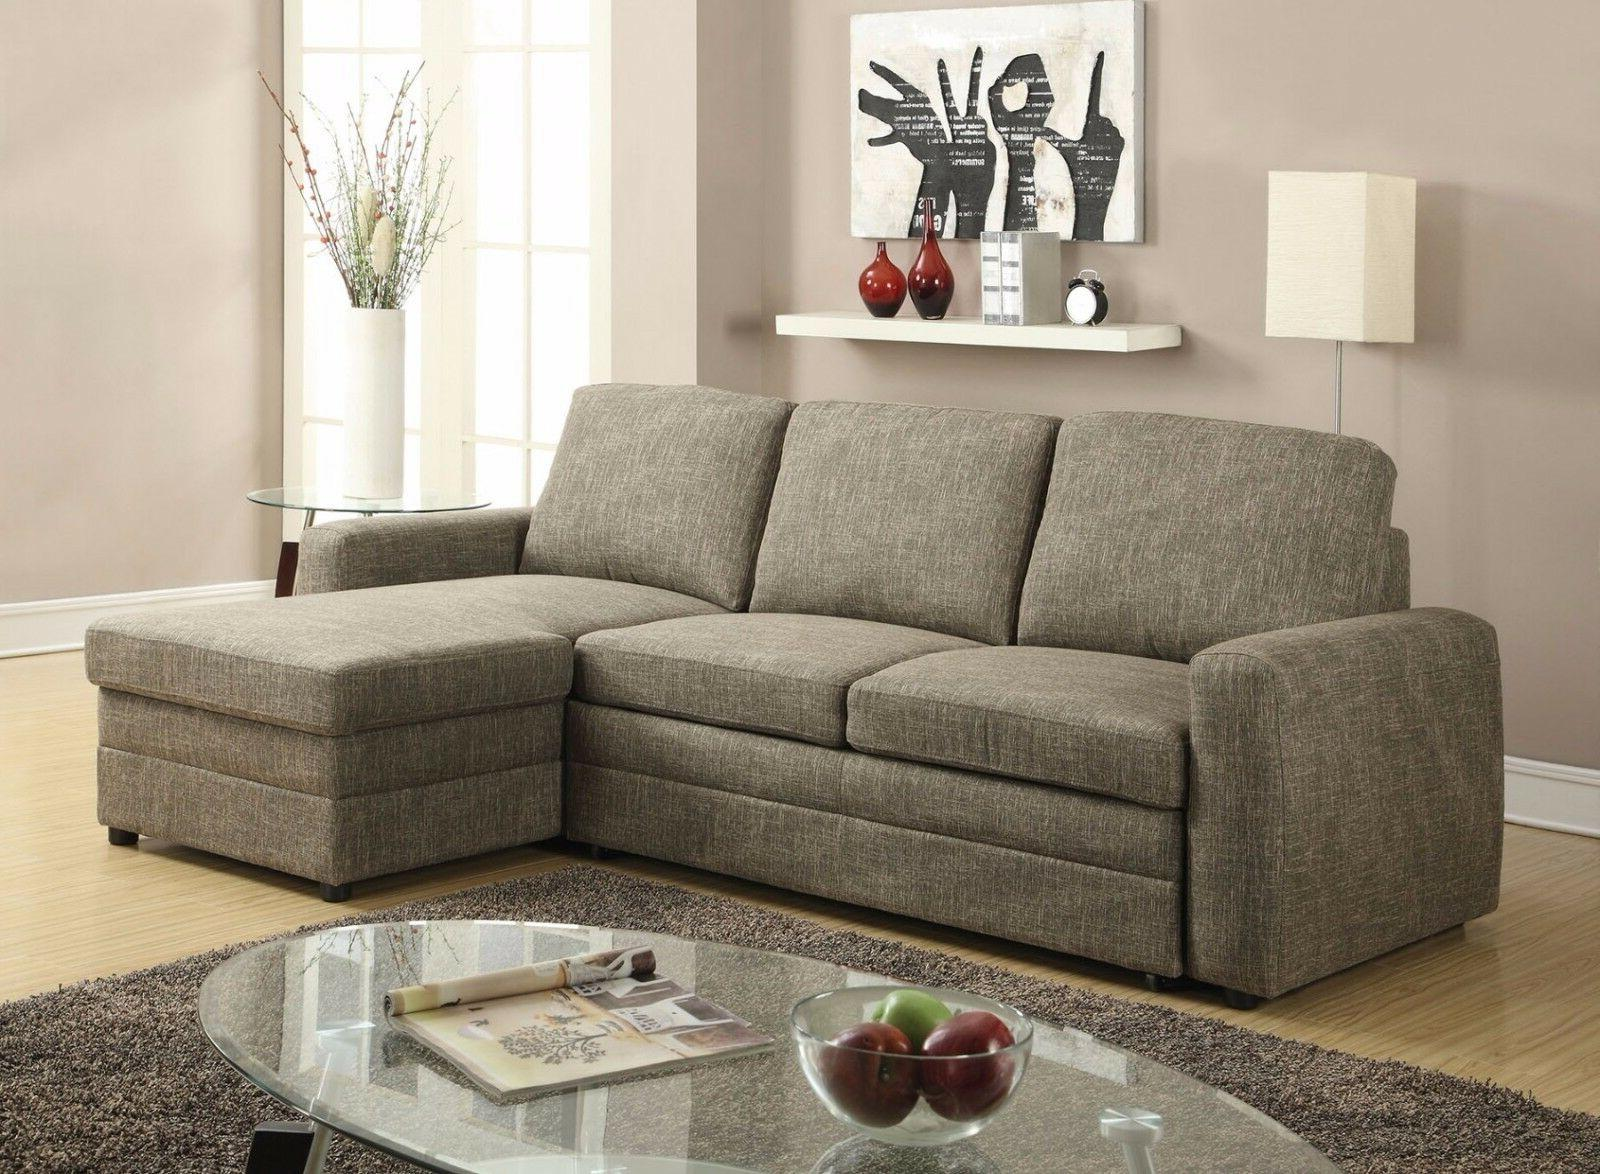 light brown linen fabric sectional sofa set